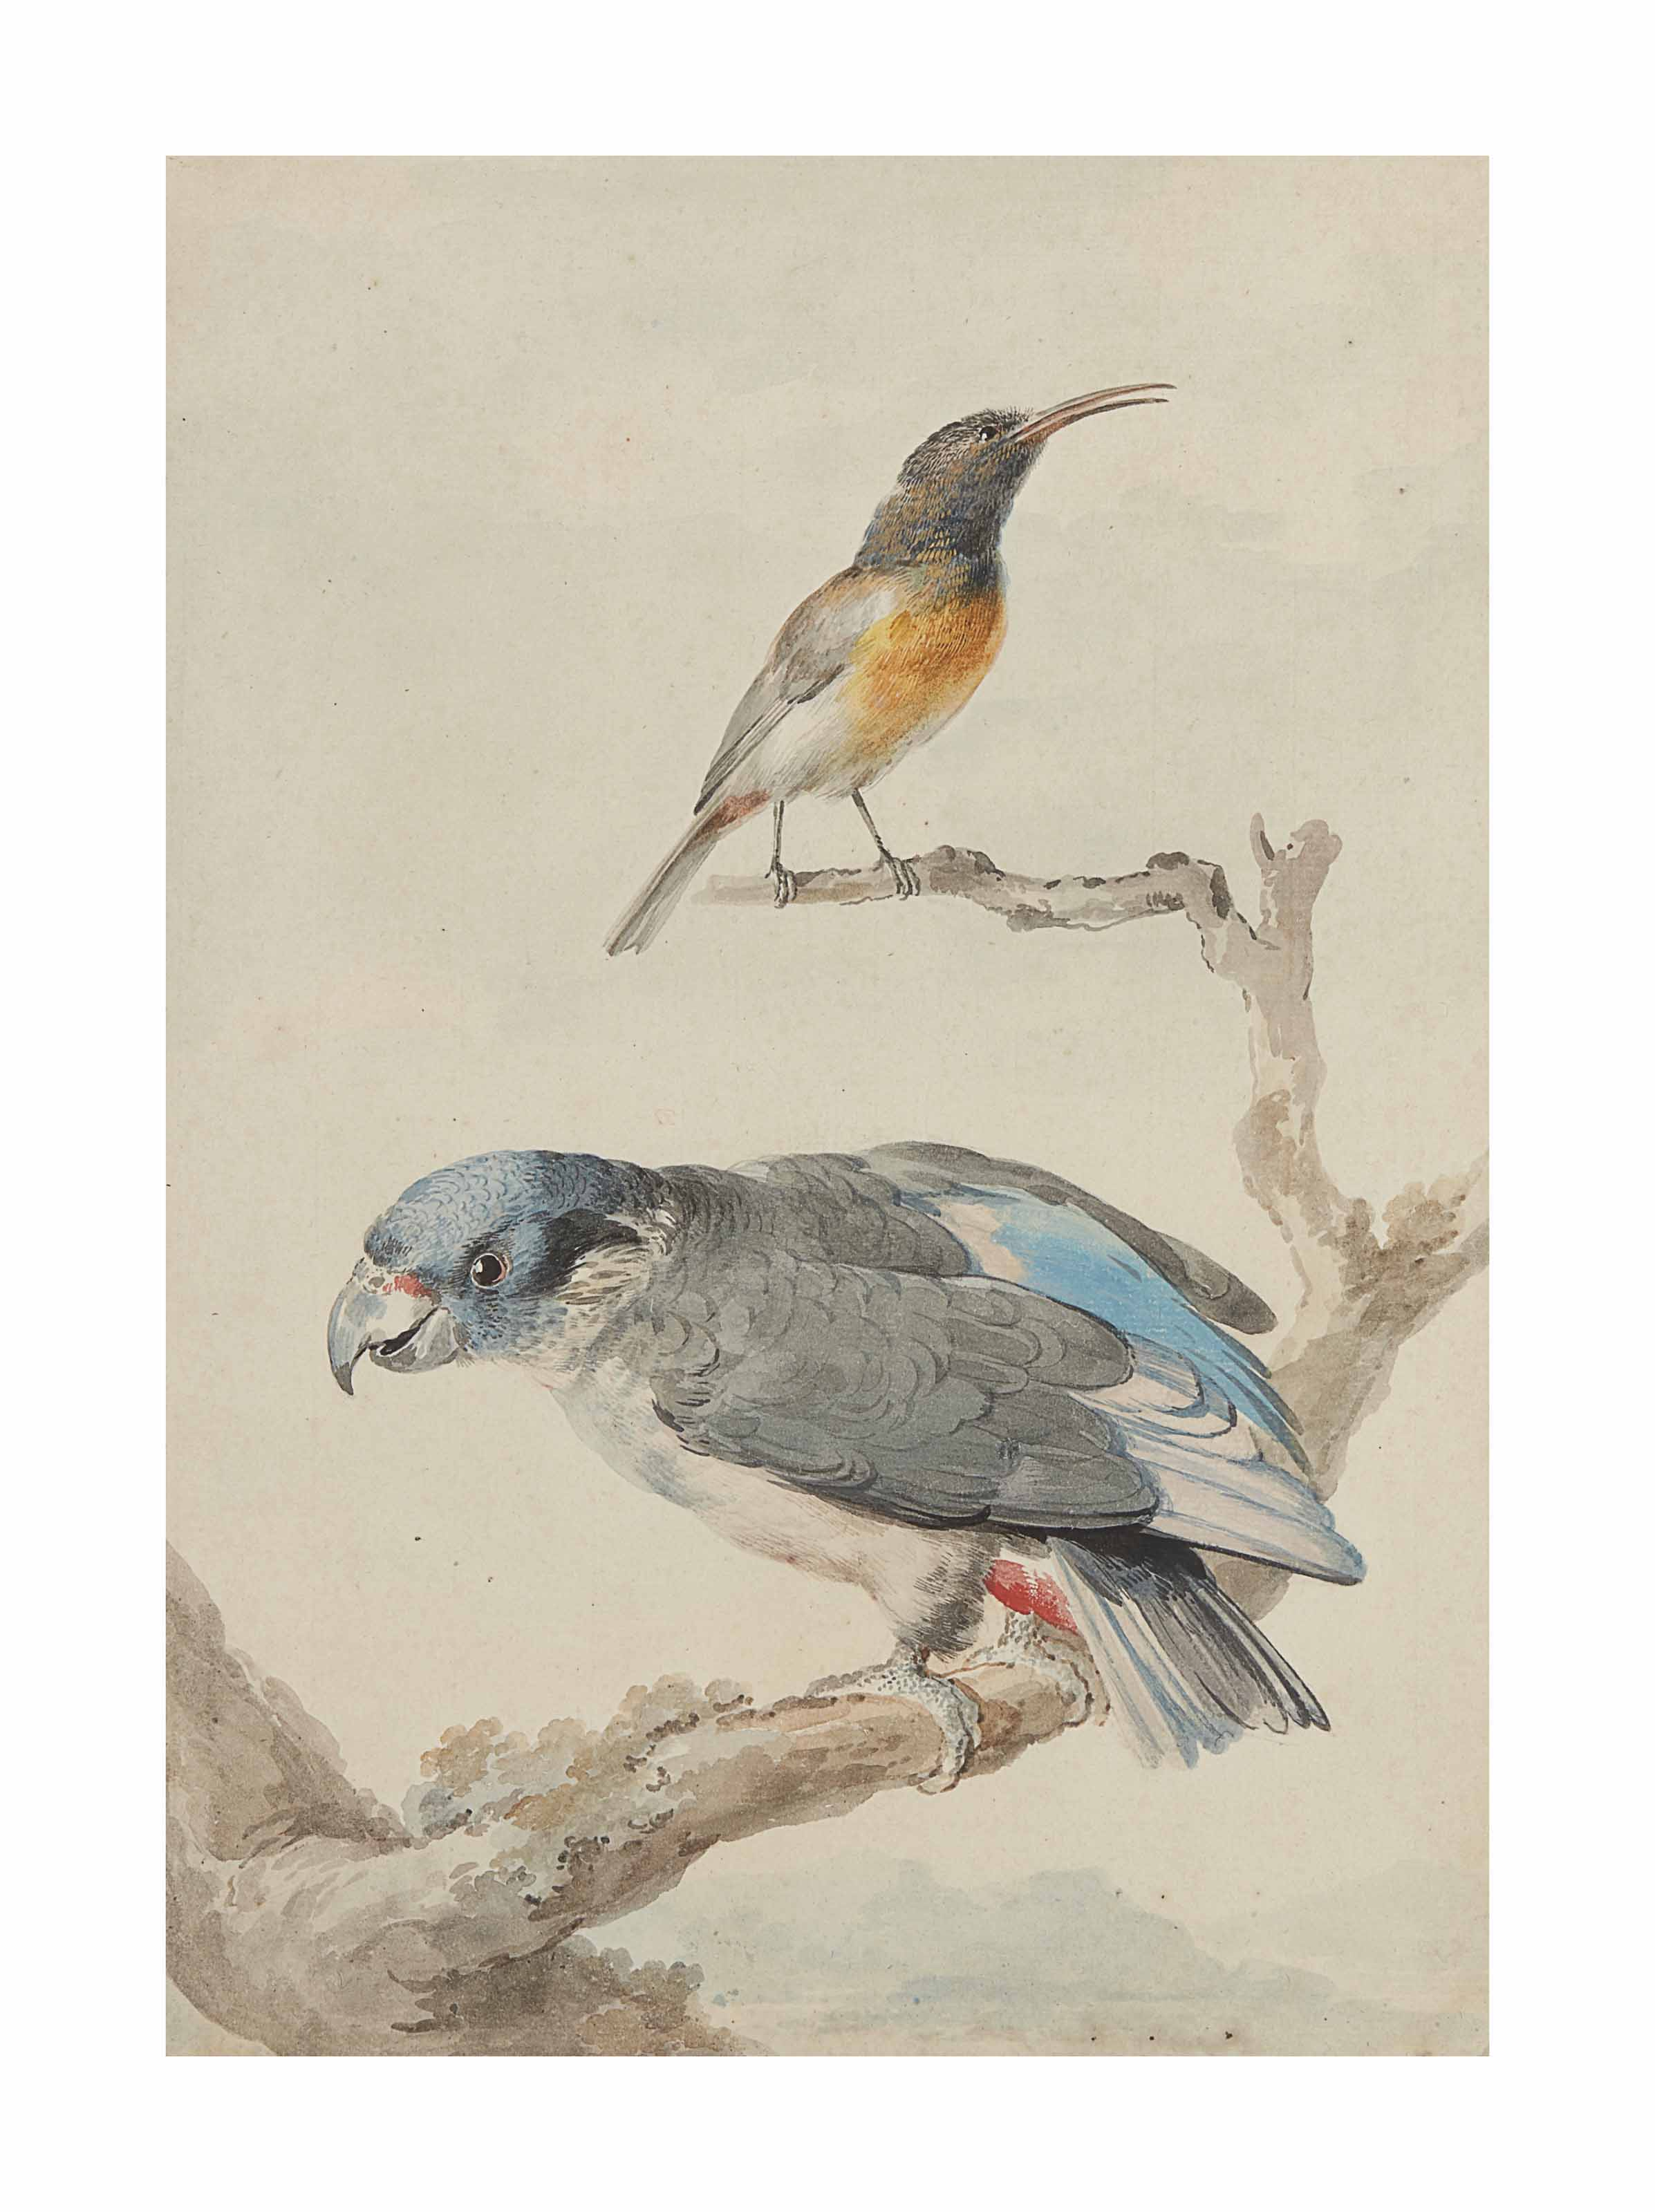 An sunbird (?) and a Dusky parrot (Pionus fuscus) on a branch